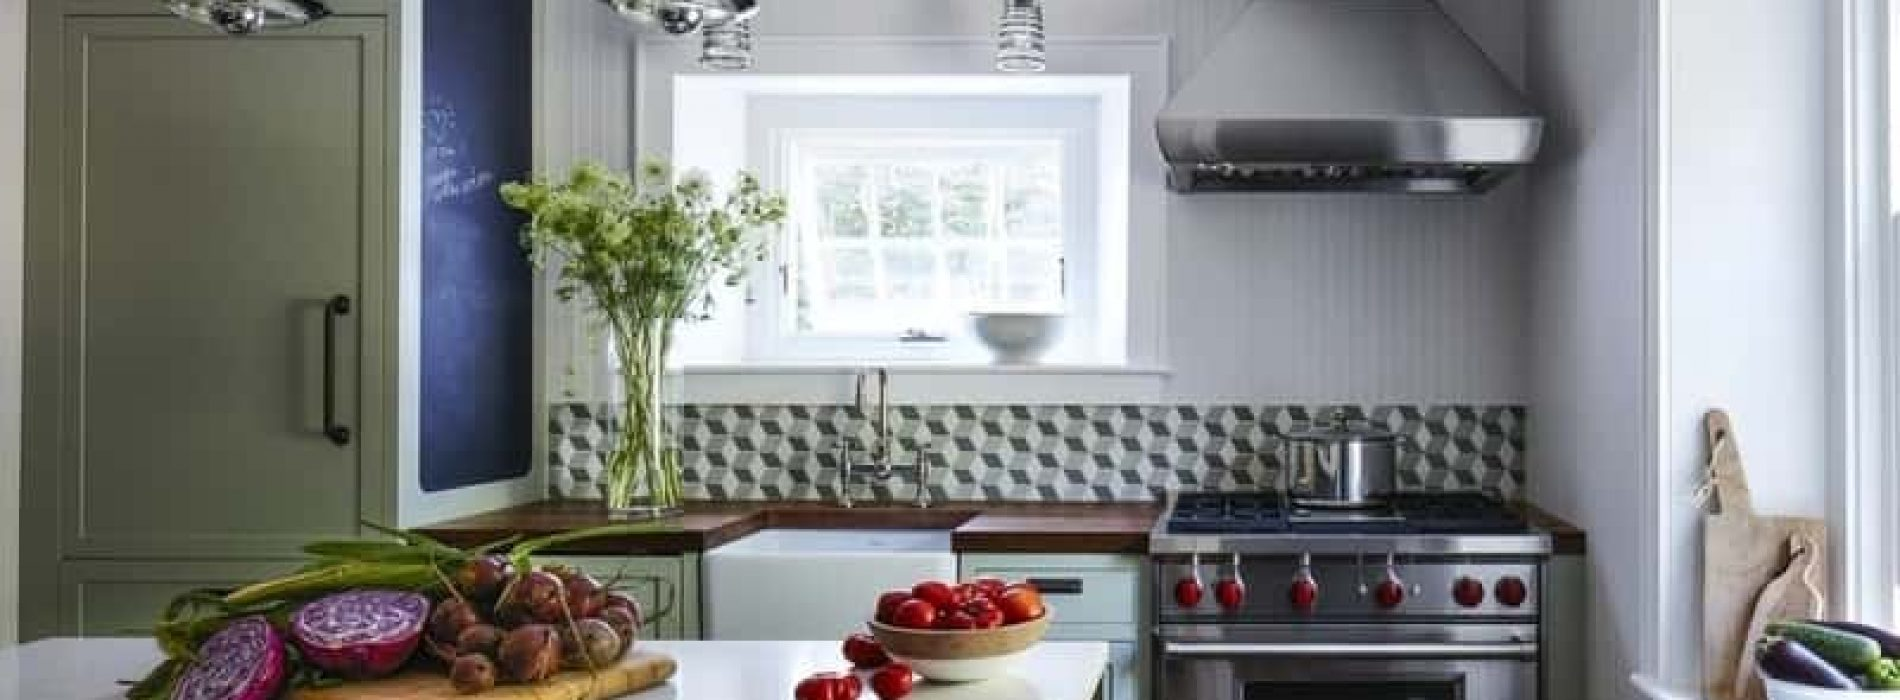 Original Tips for Small Kitchen Remodeling